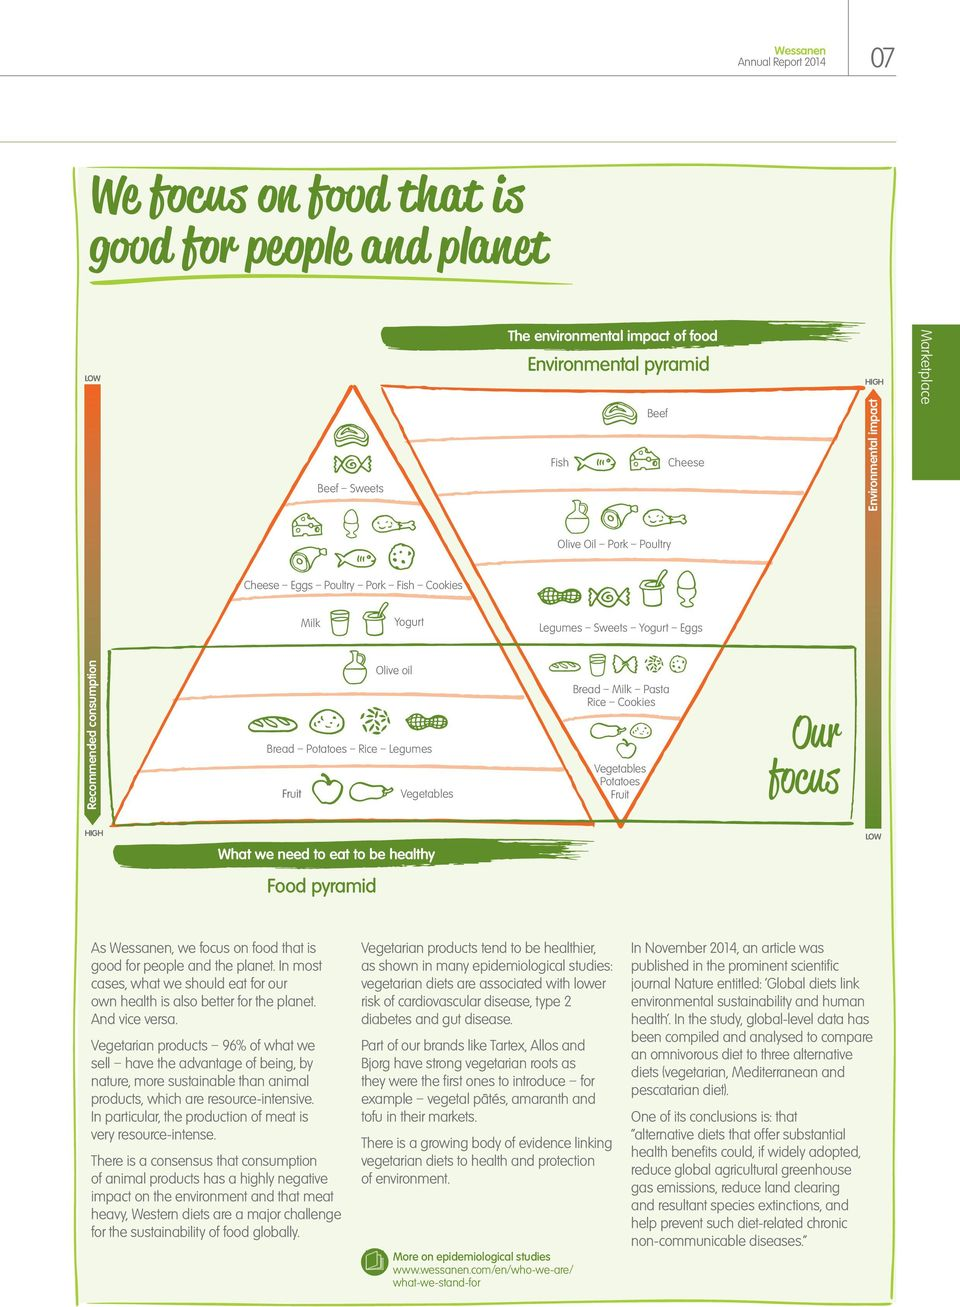 Vegetables Potatoes Fruit Our focus HIGH What we need to eat to be healthy Food pyramid LOW As, we focus on food that is good for people and the planet.